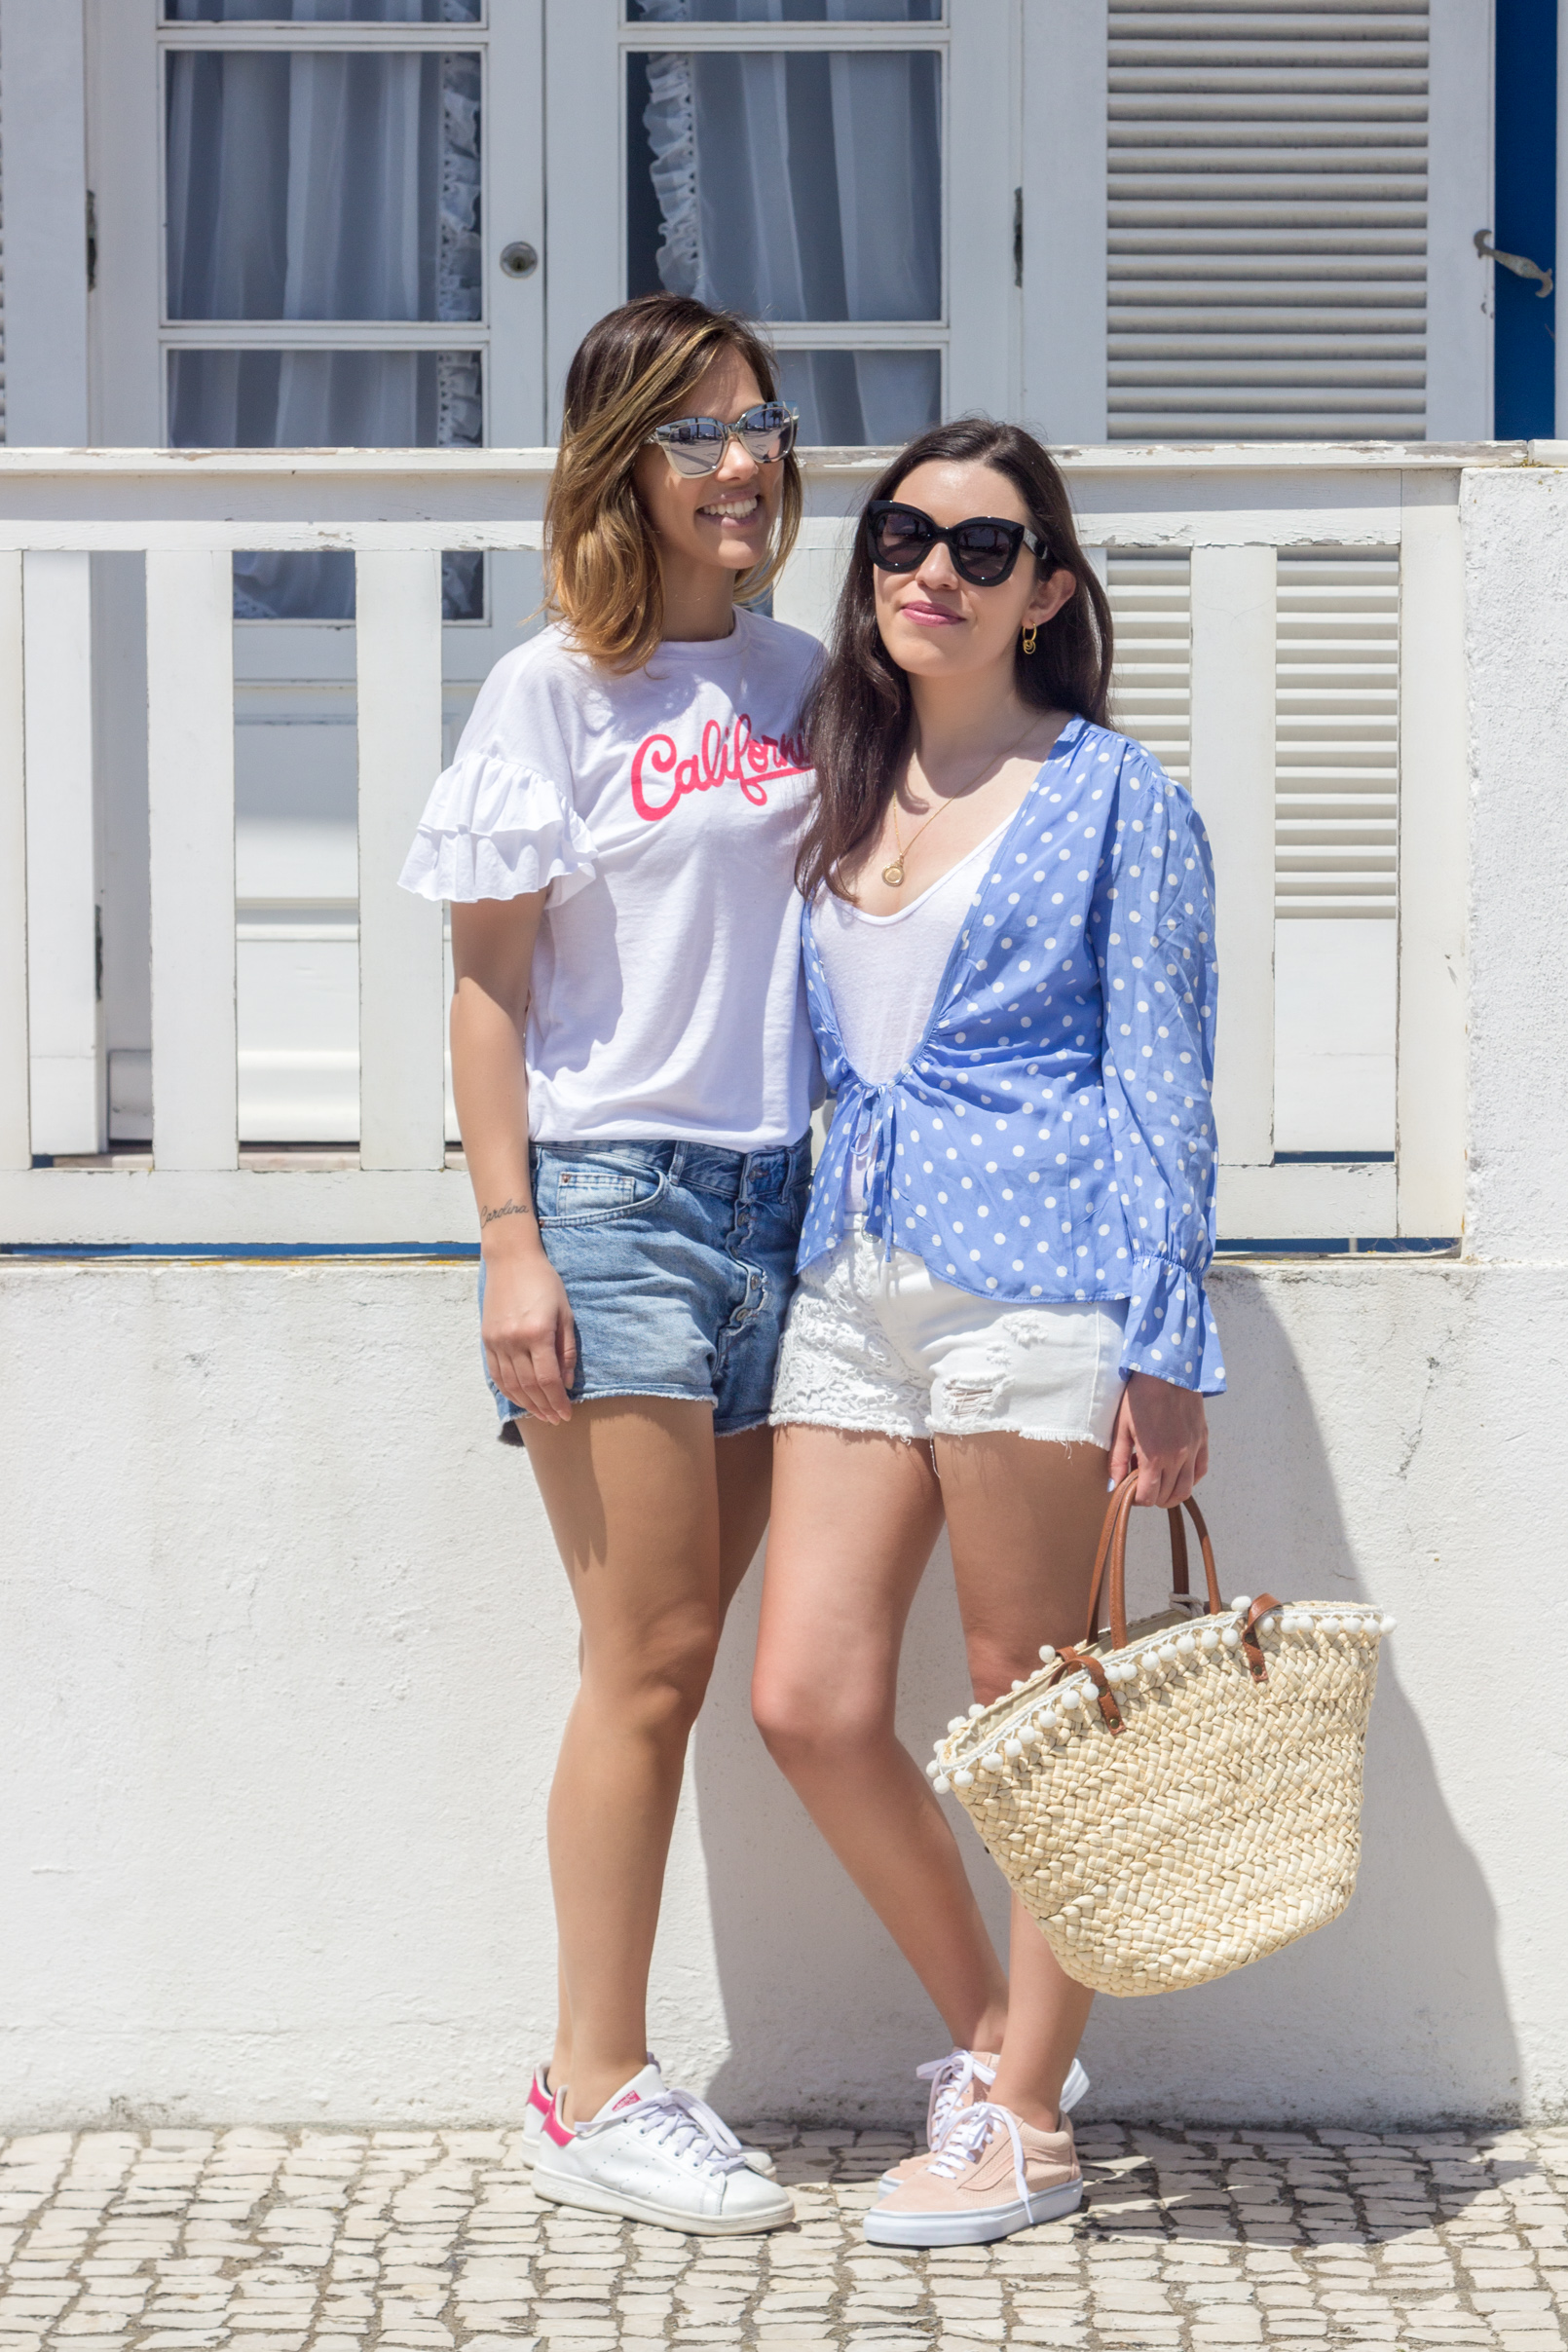 Le Fashionaire blogger catarine martins fashion inspiration dots blue mango white shirt pale pink gold dots suede vans dressofroses simona totaro 5326 EN blogger catarine martins fashion inspiration dots blue mango white shirt pale pink gold dots suede vans dressofroses simona totaro 5326 EN